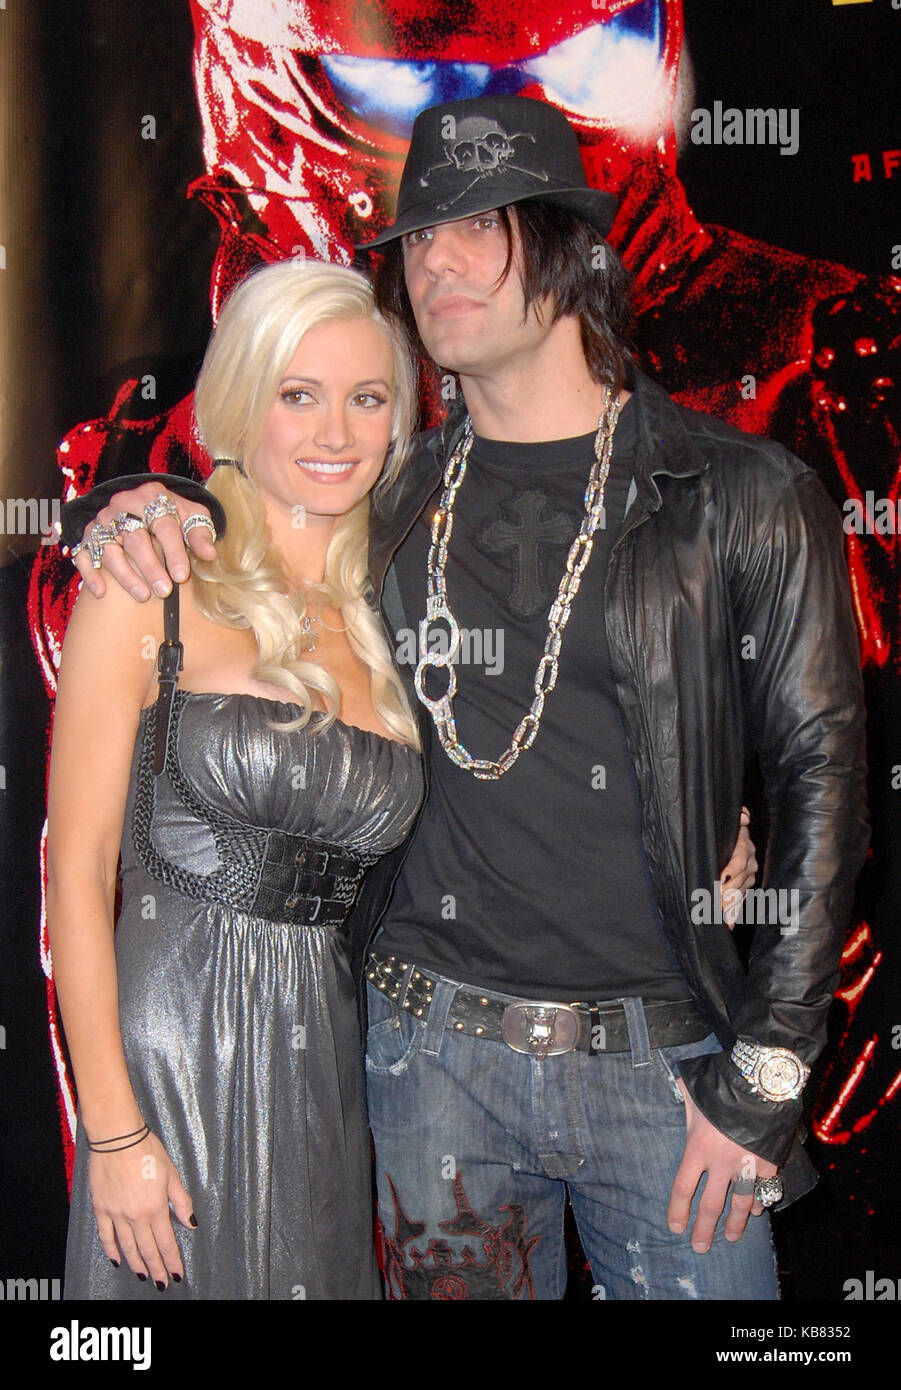 holly madison and criss angel stock photos & holly madison and criss